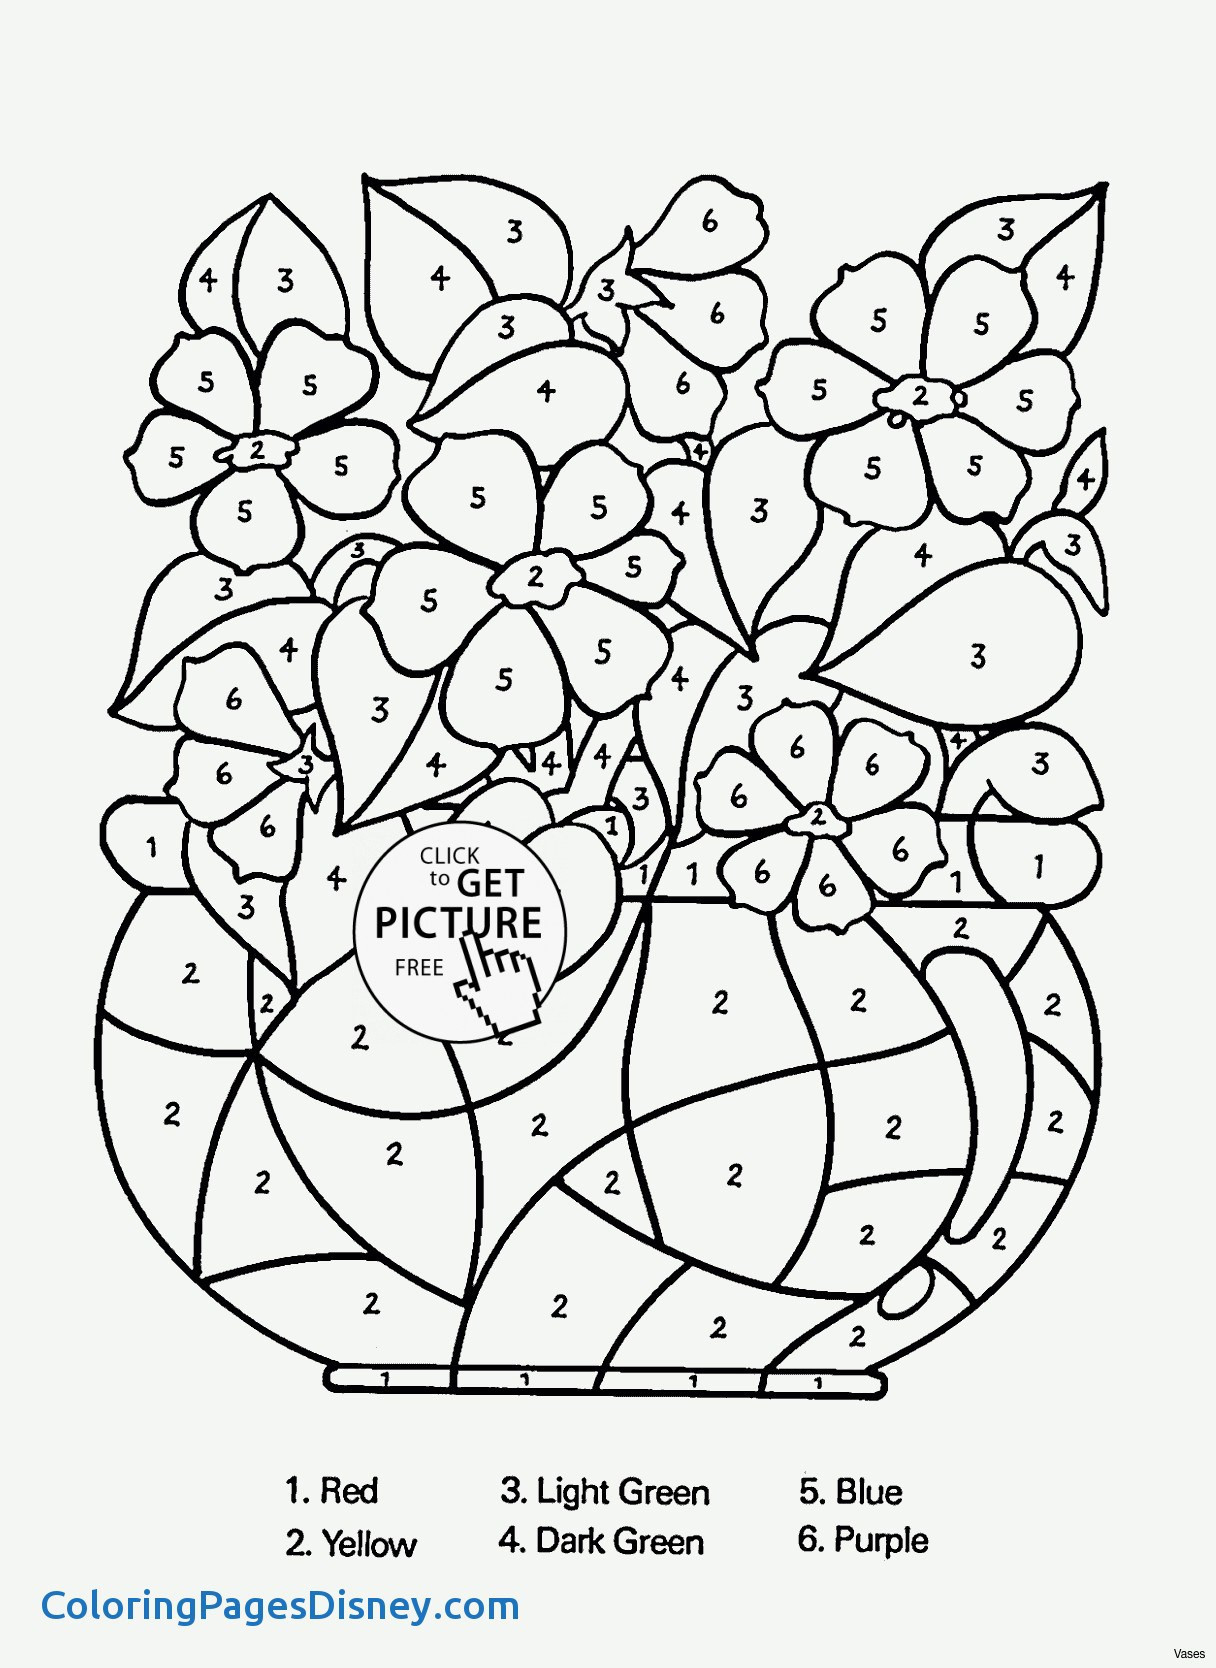 ice cream vase of coloring pages roses new vases flower vase page fun 6 intended for free coloring pages inspirational cool vases flower vase